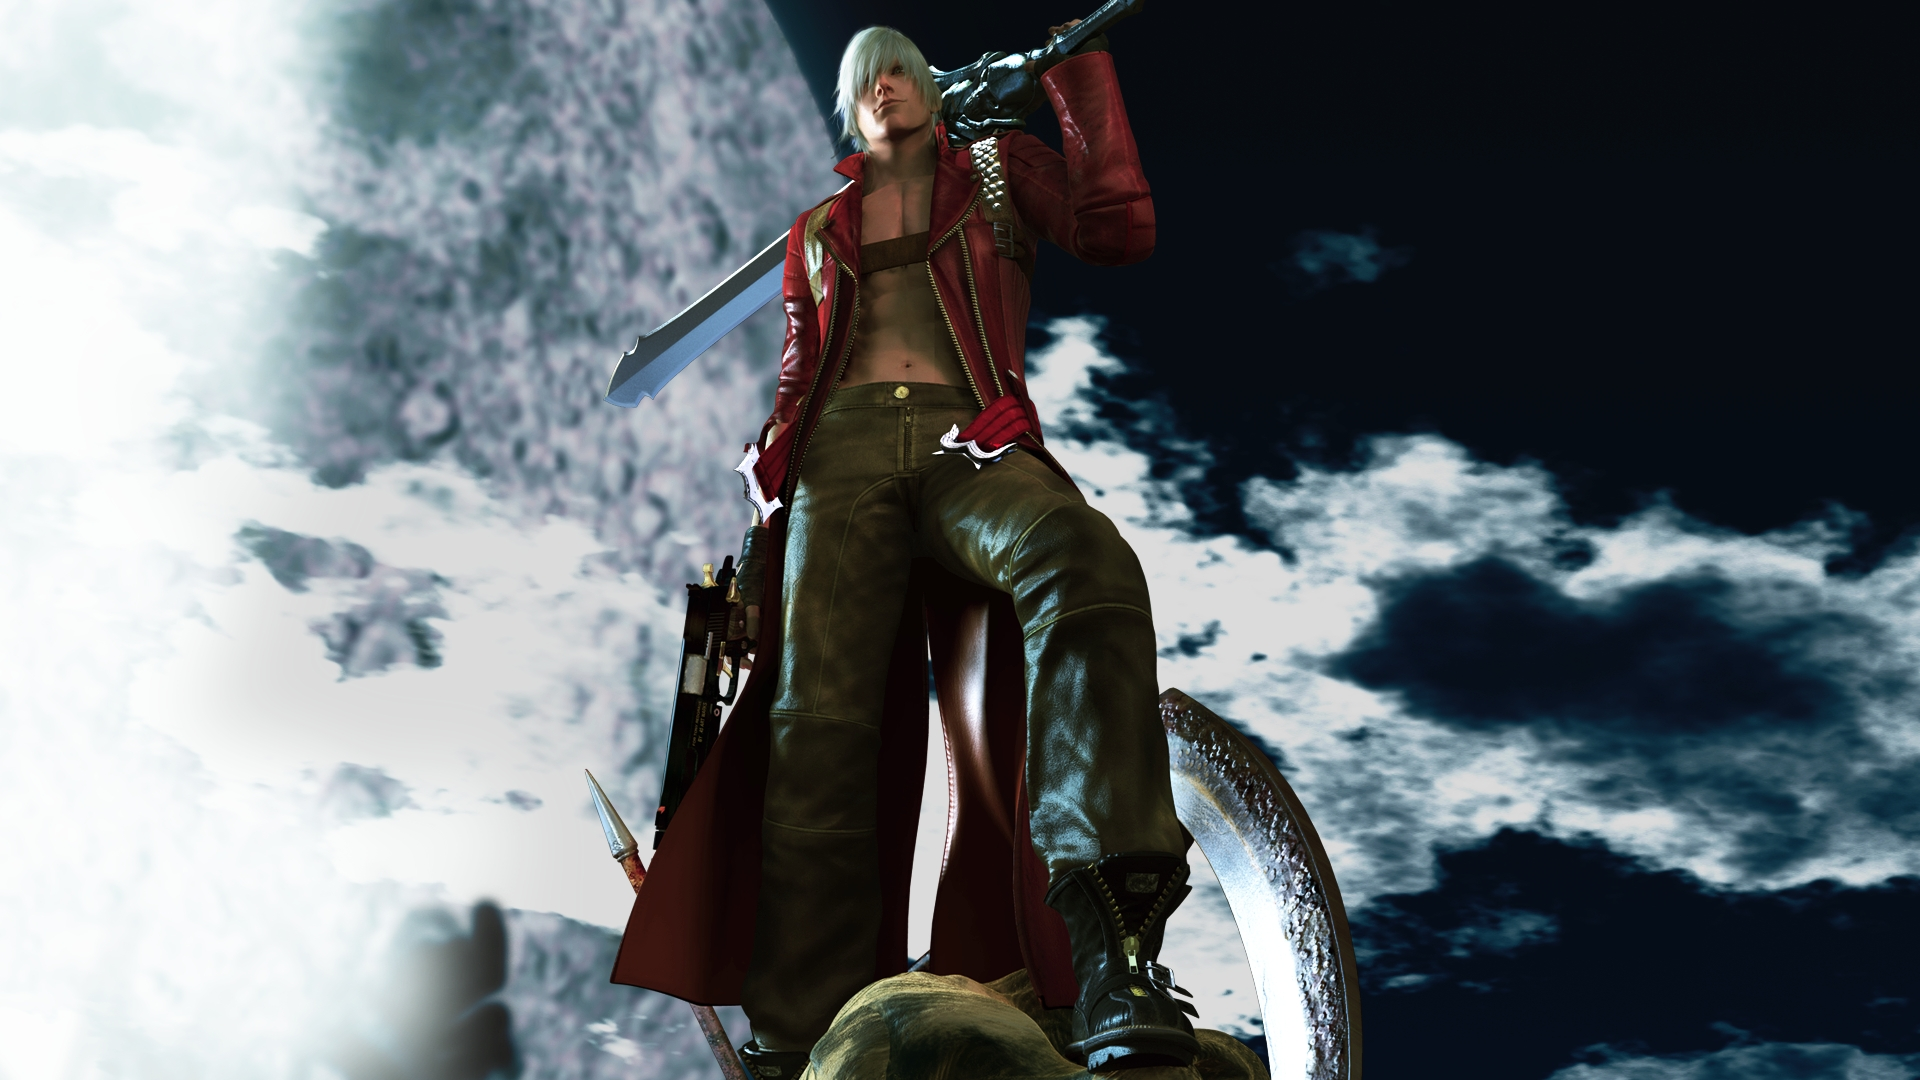 Devil may cry hd will be free for twitch prime members this month devil may cry is a twitch prime freebie starting february 27 2018 siliconera voltagebd Images